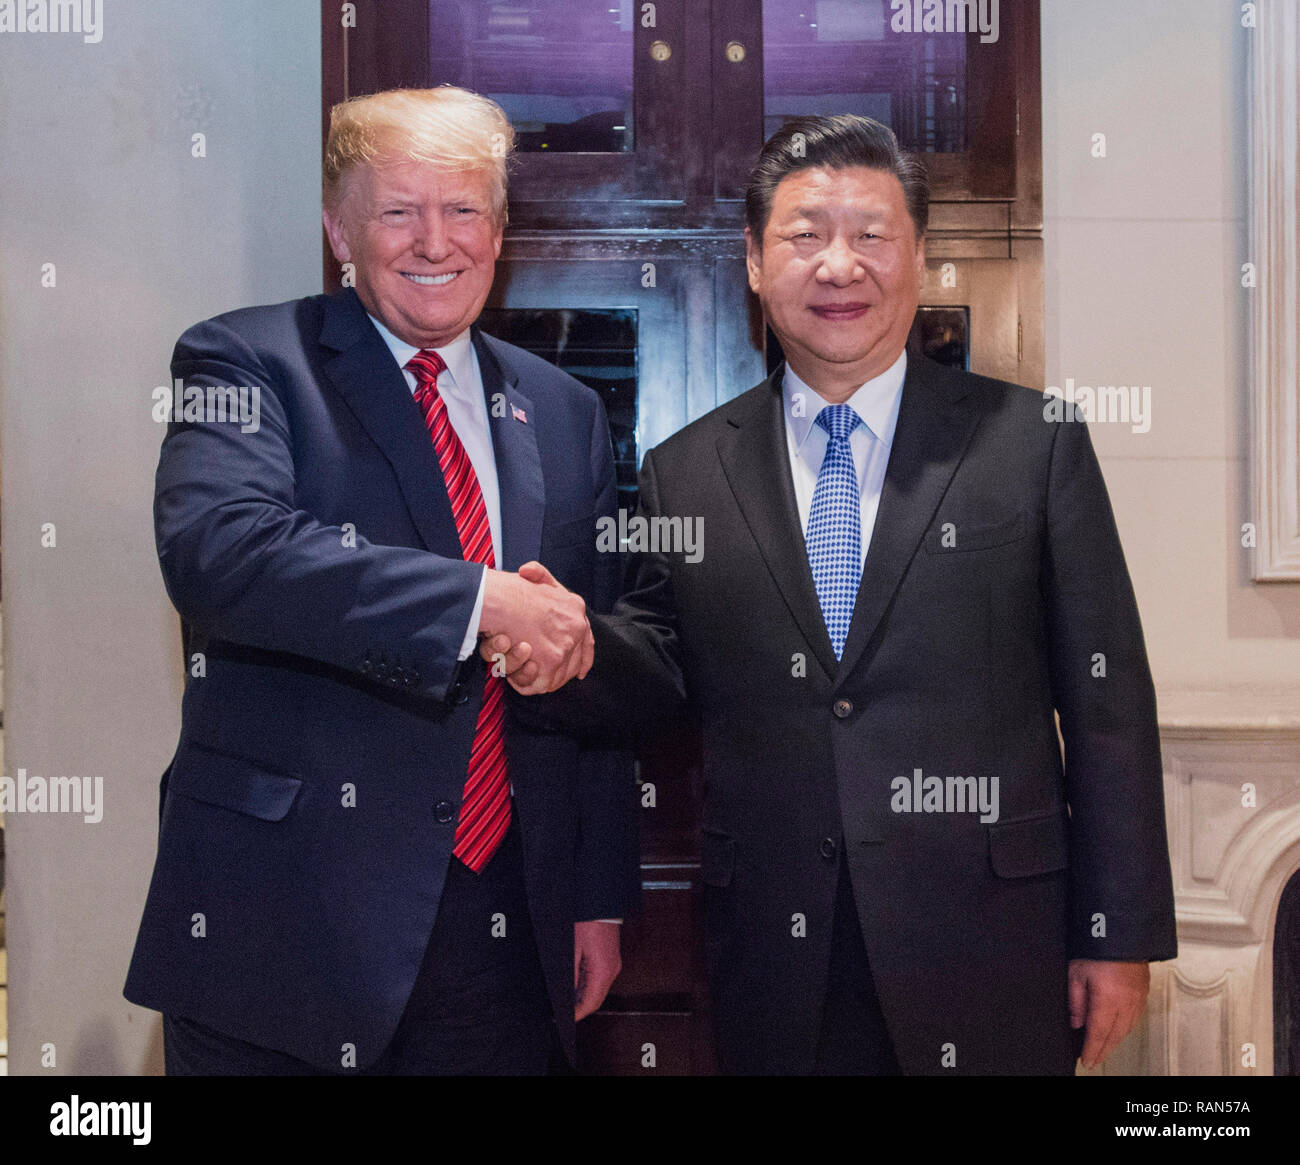 Beijing, Argentina. 1st Dec, 2018. Chinese President Xi Jinping (R) meets with his U.S. counterpart Donald Trump in Buenos Aires, Argentina, Dec. 1, 2018. President Xi attended a working dinner with President Trump in Buenos Aires. Credit: Li Xueren/Xinhua/Alamy Live News - Stock Image